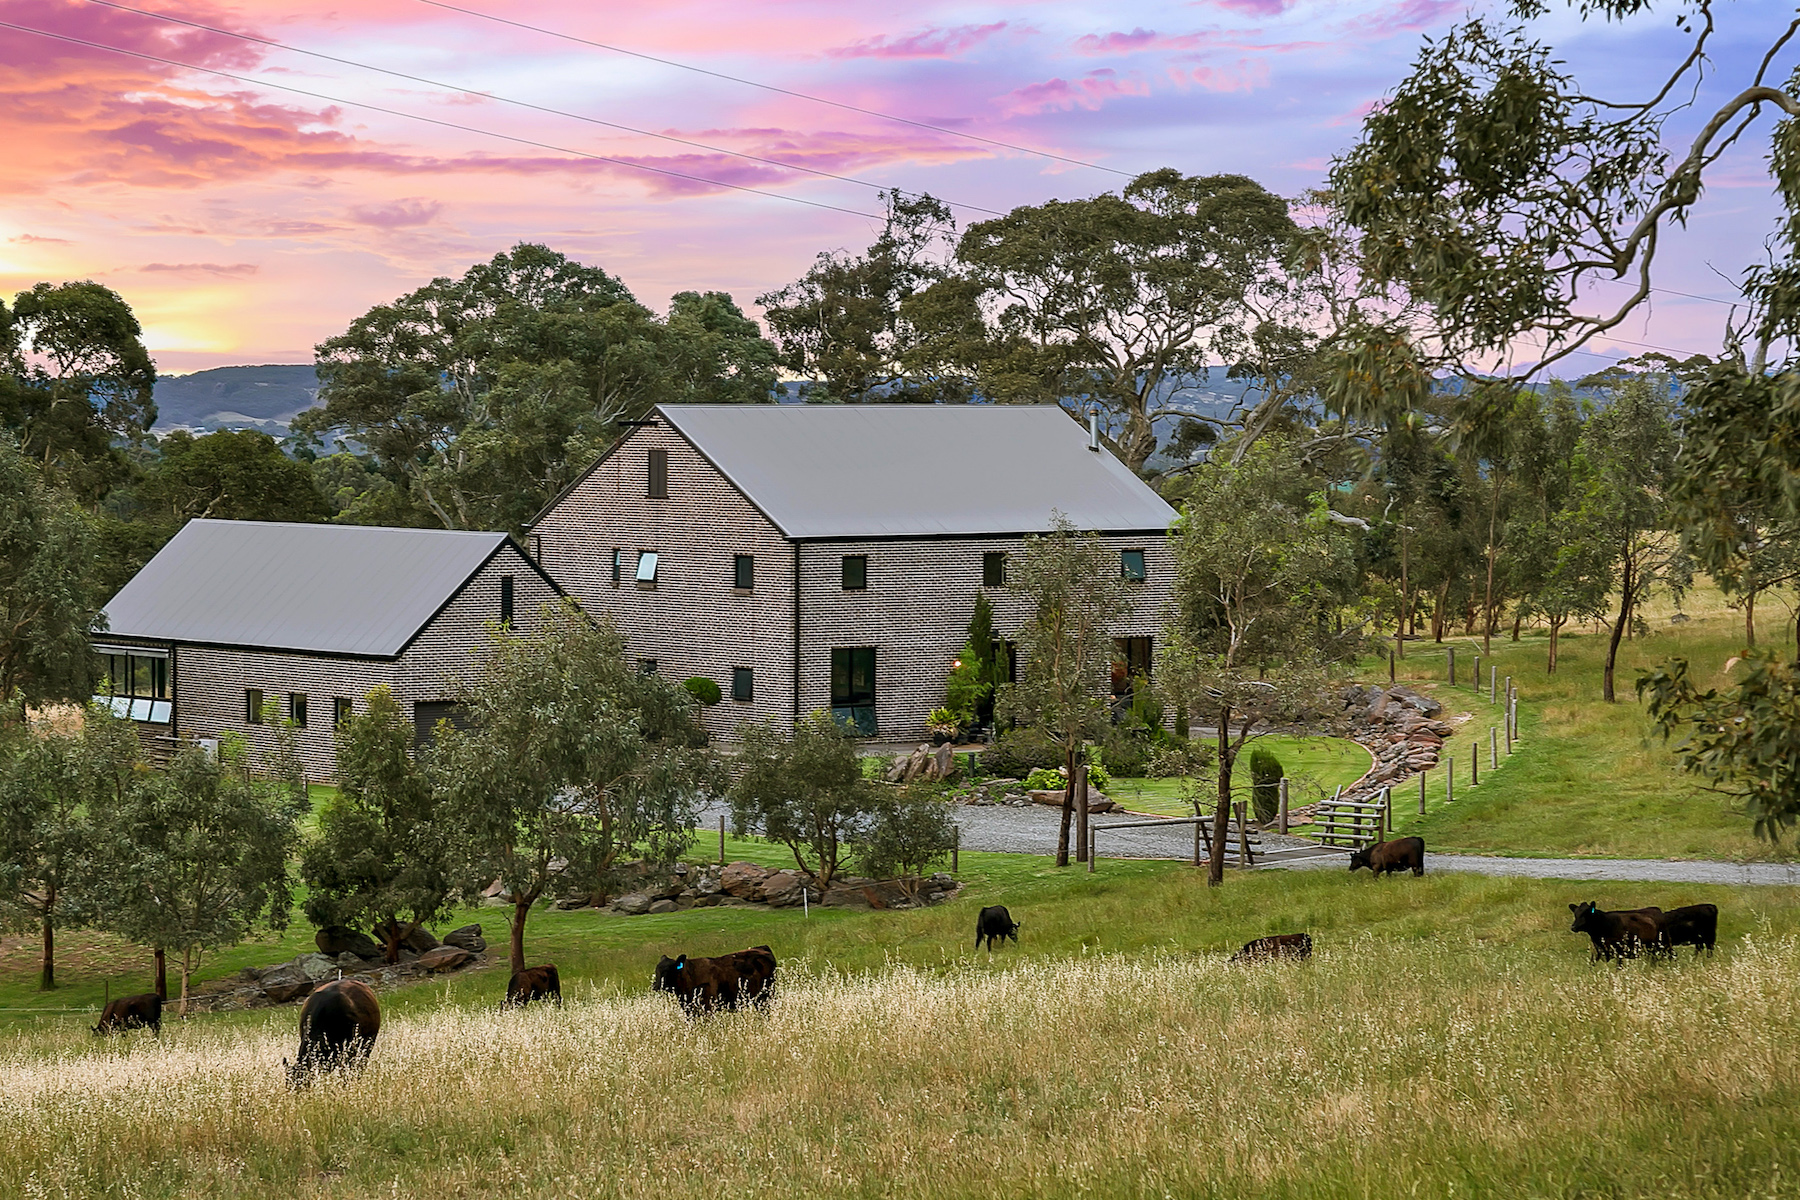 Single Family Home for Sale at Elegant Country Estate in Picturesque Setting 47 Woolshed Road, Mount Torrens, South Australia, 5244 Australia